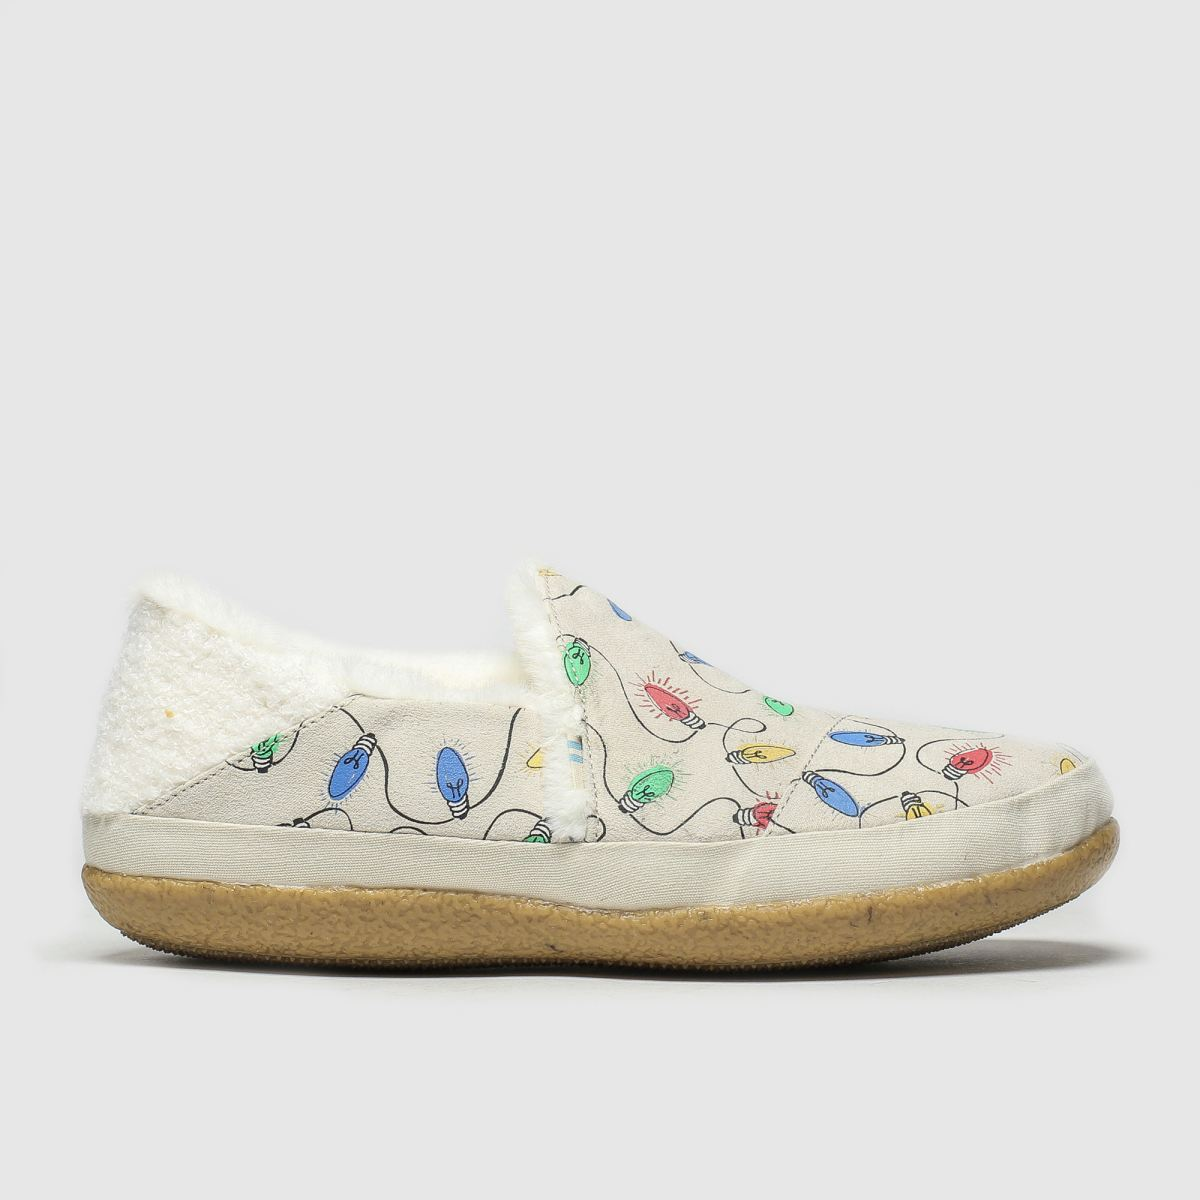 Toms Natural India Slippers